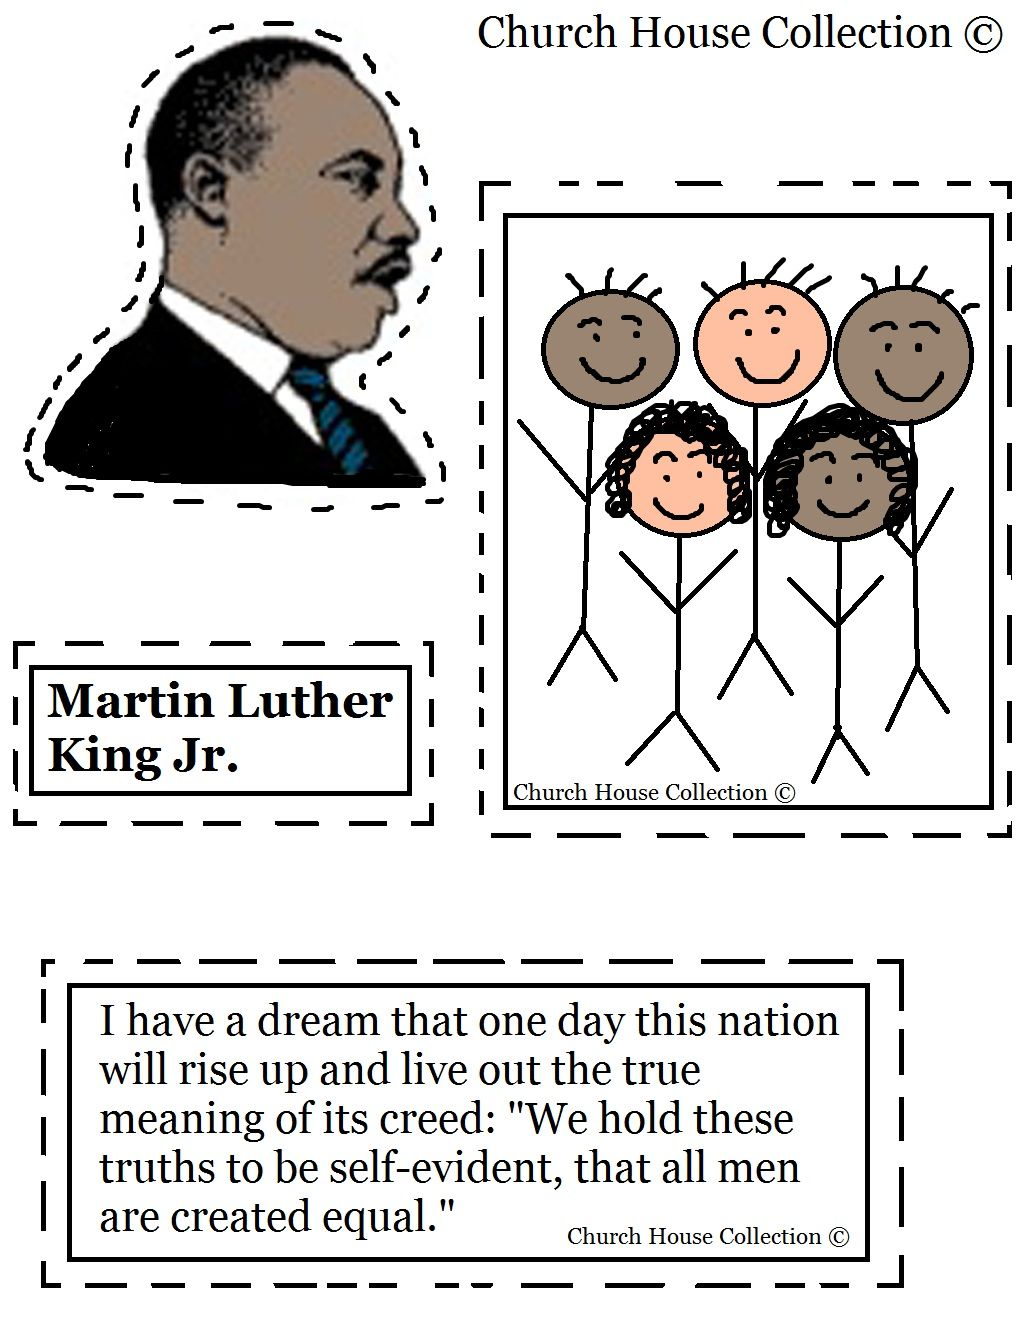 worksheet Martin Luther King Worksheet dr martin luther king jr printables mlk martinlutherking preschool